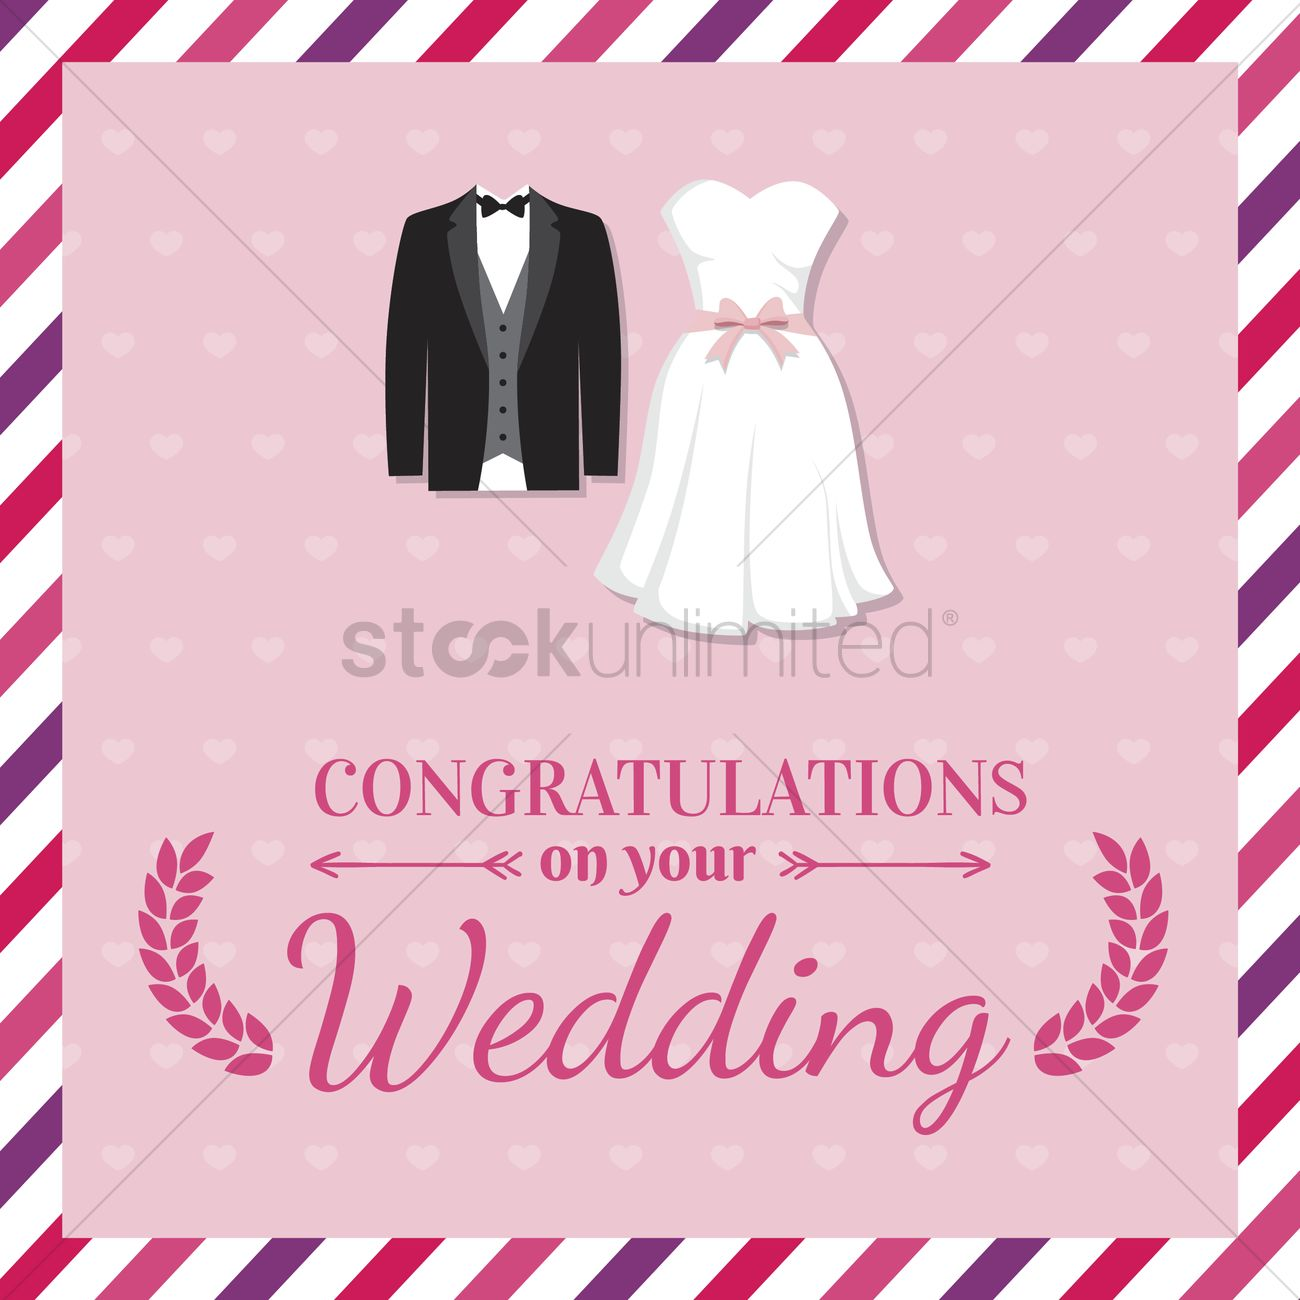 Wedding greeting card Vector Image 1610025 StockUnlimited